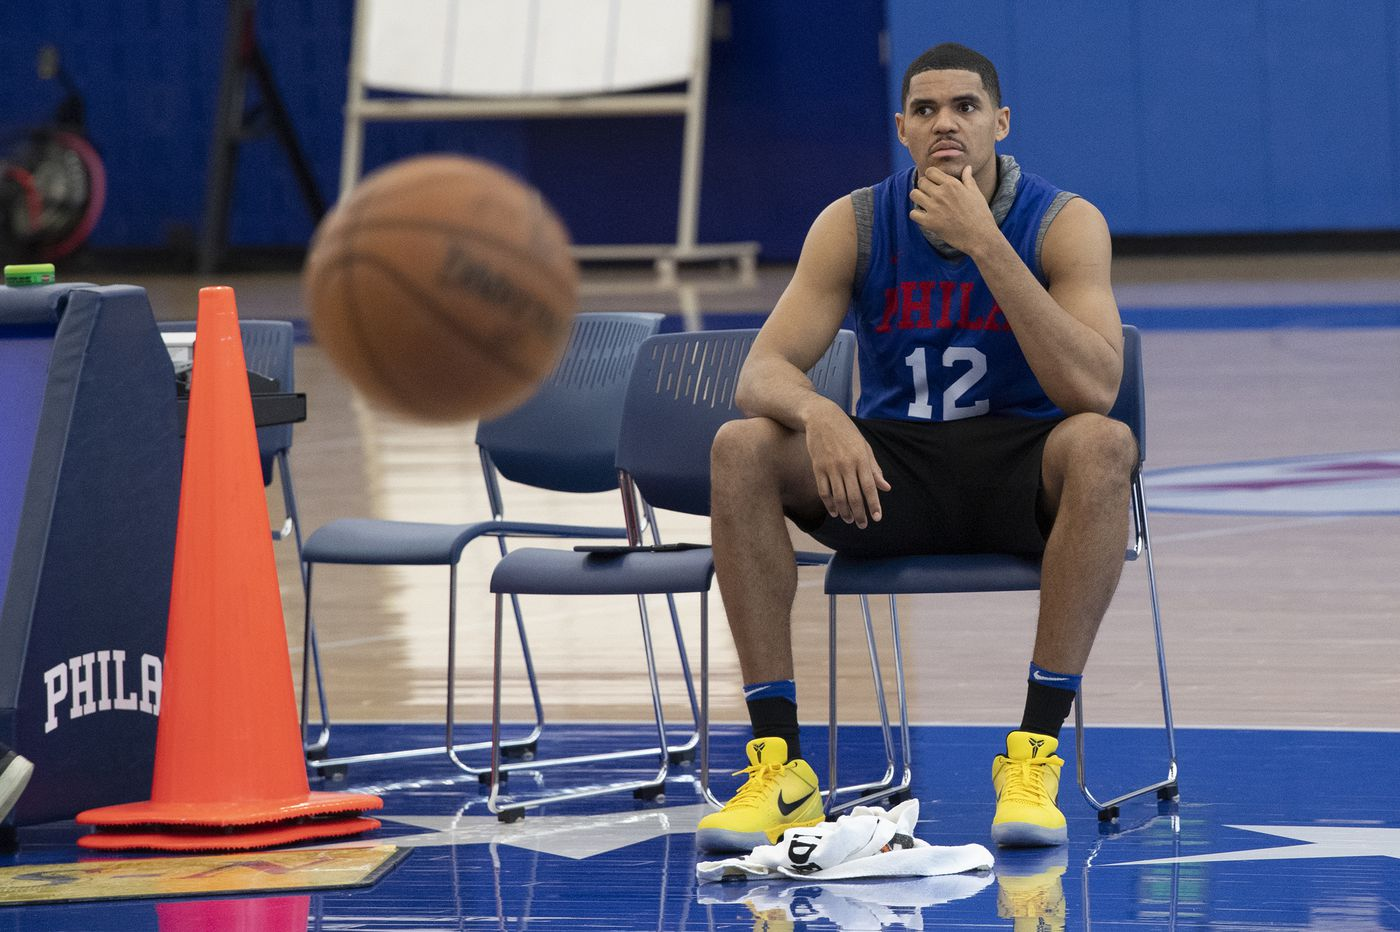 Sixers found comfort in meeting together in the aftermath of the Kobe Bryant tragedy